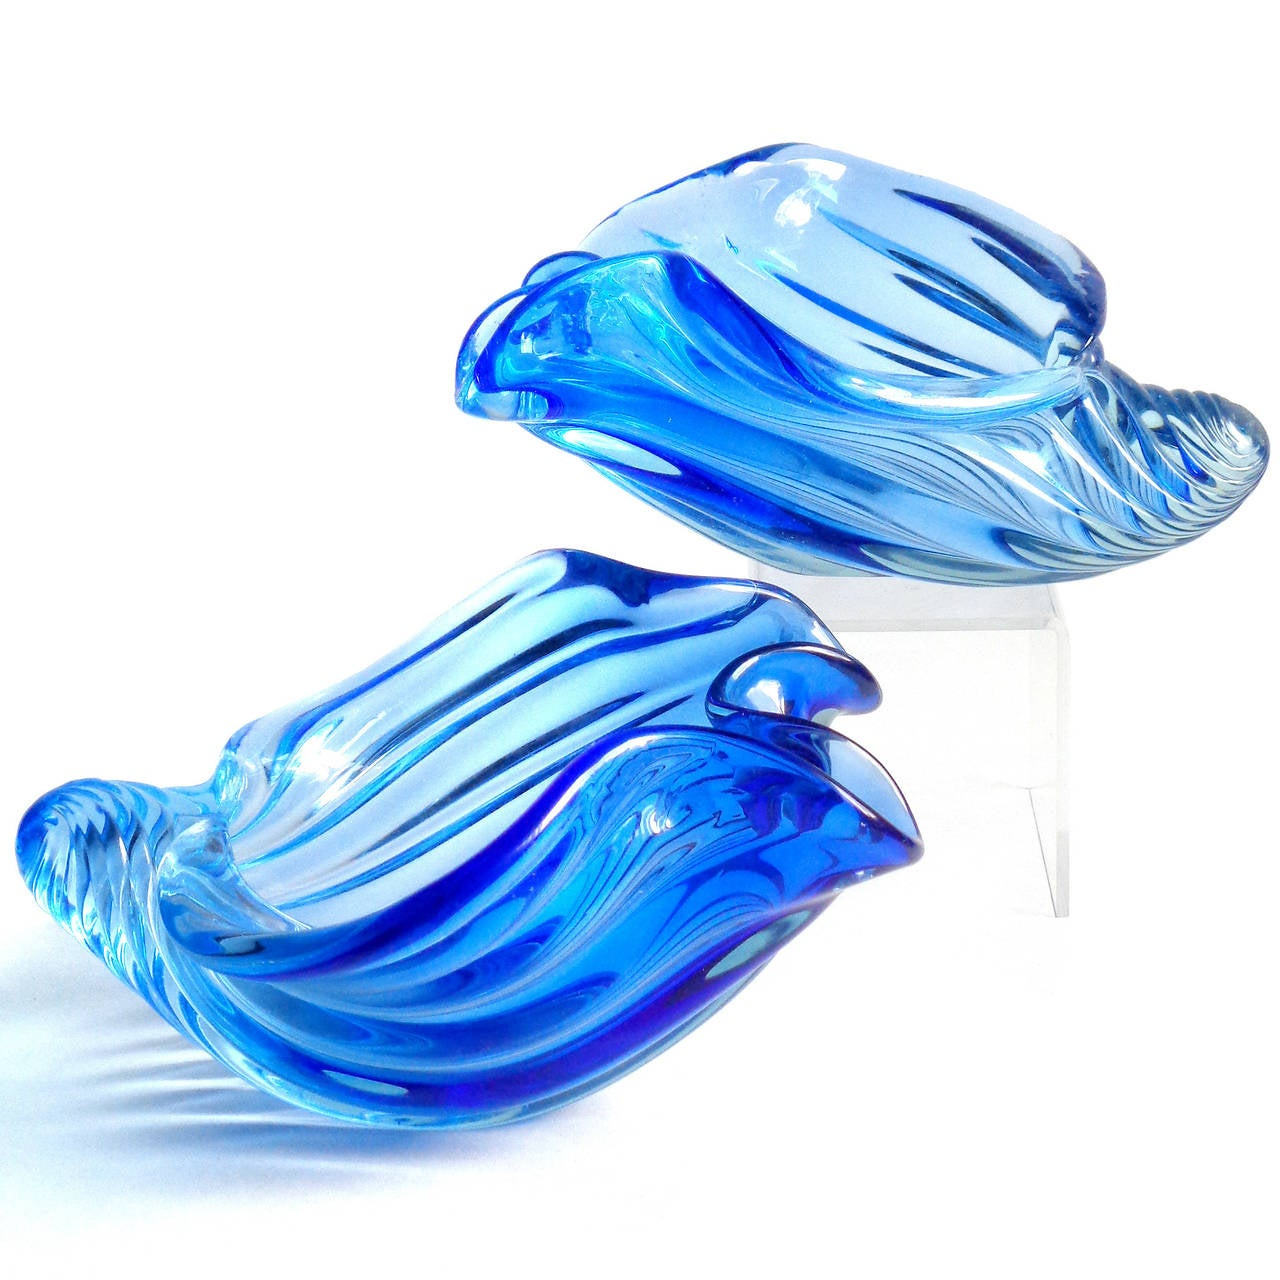 Gorgeous set of two Murano hand blown Sommerso cobalt blue Italian art glass seashell sculptural bowls. Documented to Alfredo Barbini, circa 1950s-1960s. One is a little larger than the other. Perfect for any Marine or Ocean themed room. Similar and